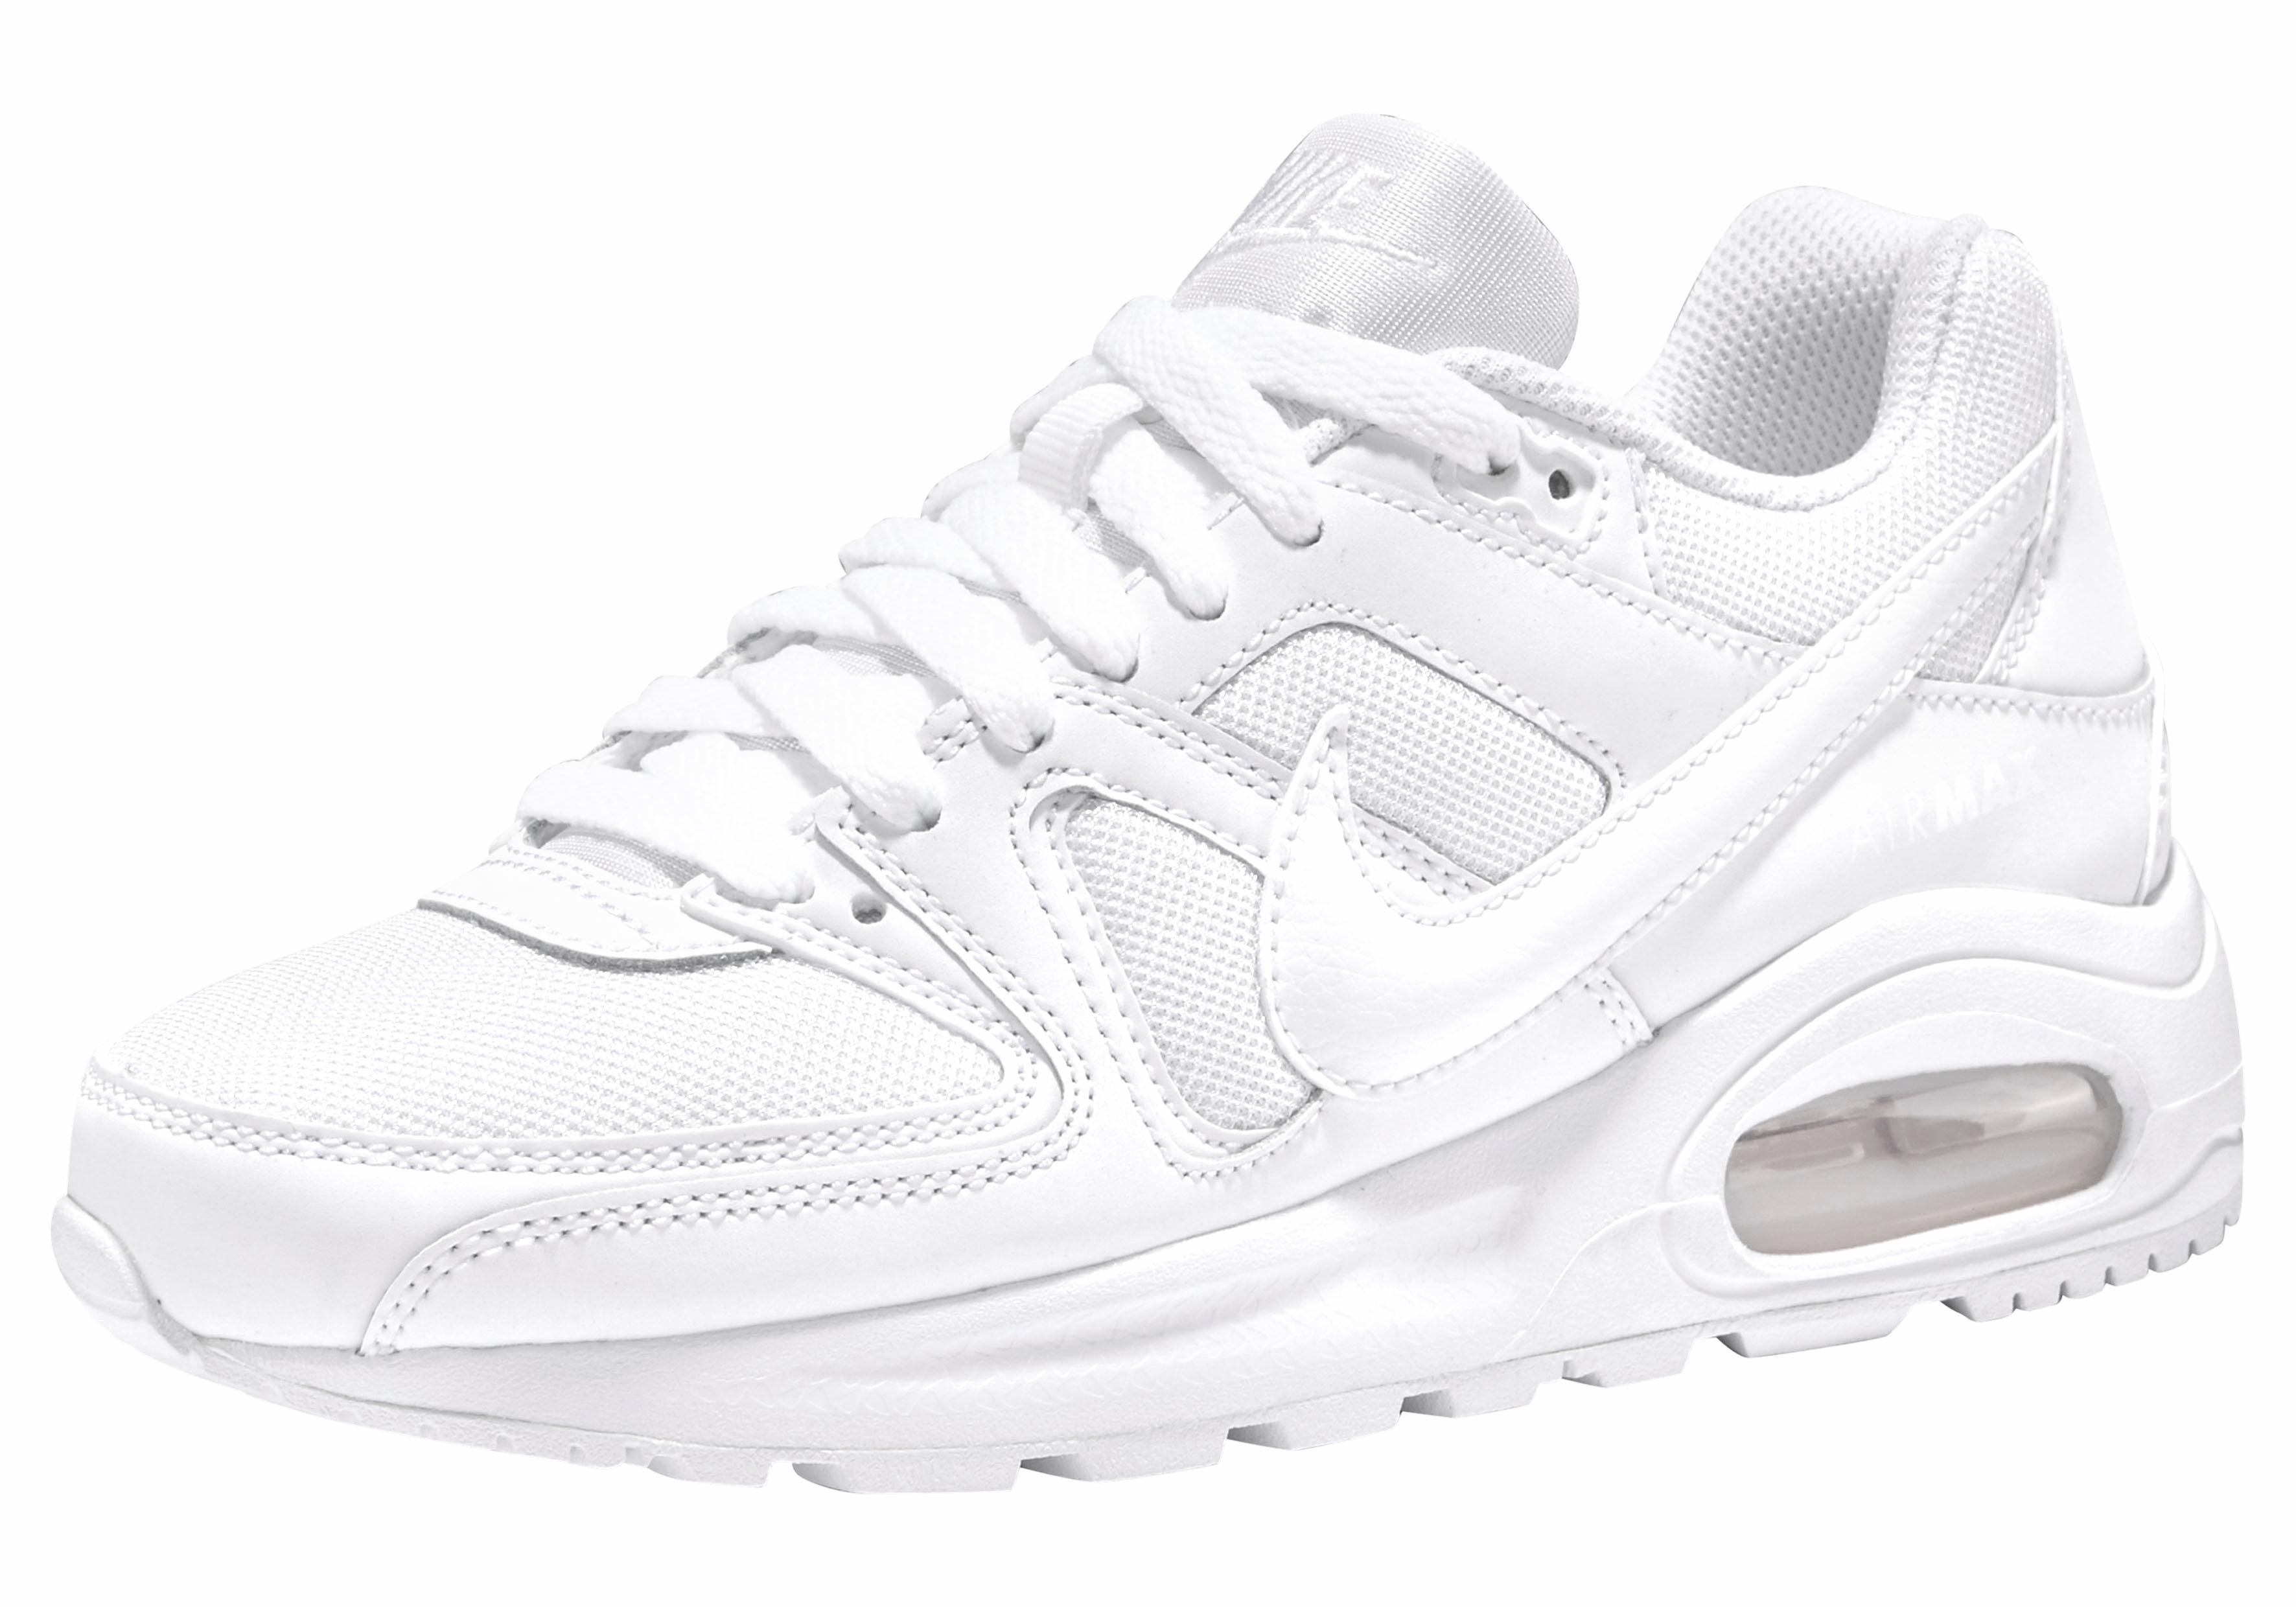 adf3fafe595 ... Nike Sportswear sneakers »Wmns Air Max Command Premium«, Nike  Sportswear sneakers »Air Max Command Flex (gs)«, Nike Sportswear sneakers »Air  Max ...